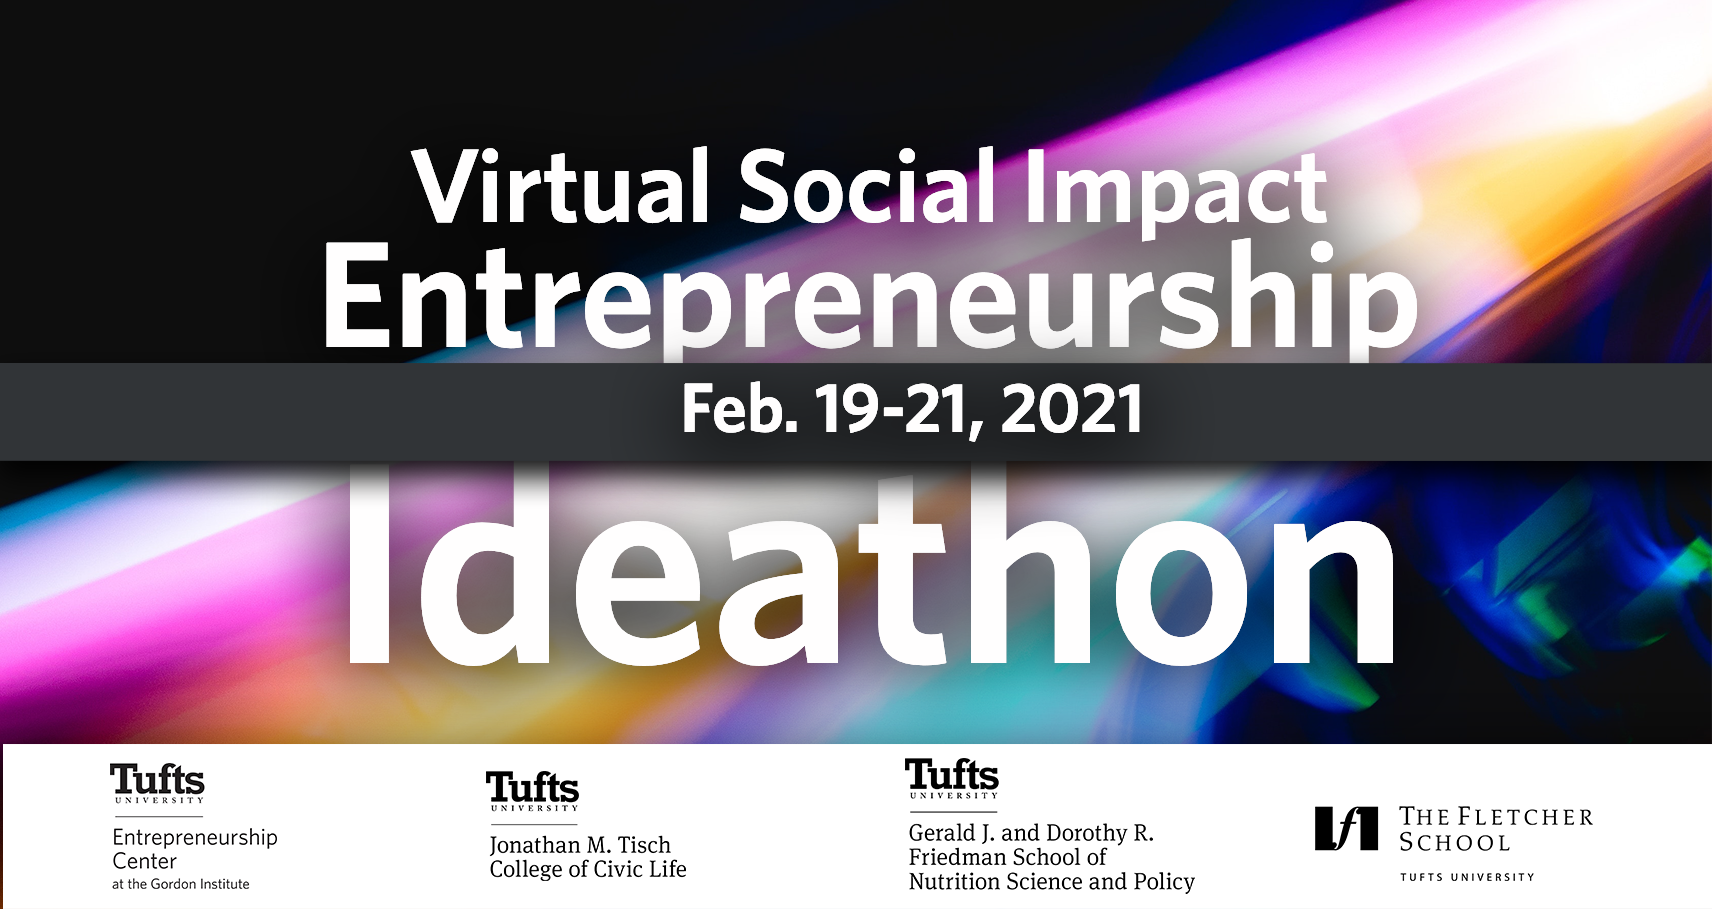 Ideathon-Eventbrite-wide-Feb19-21